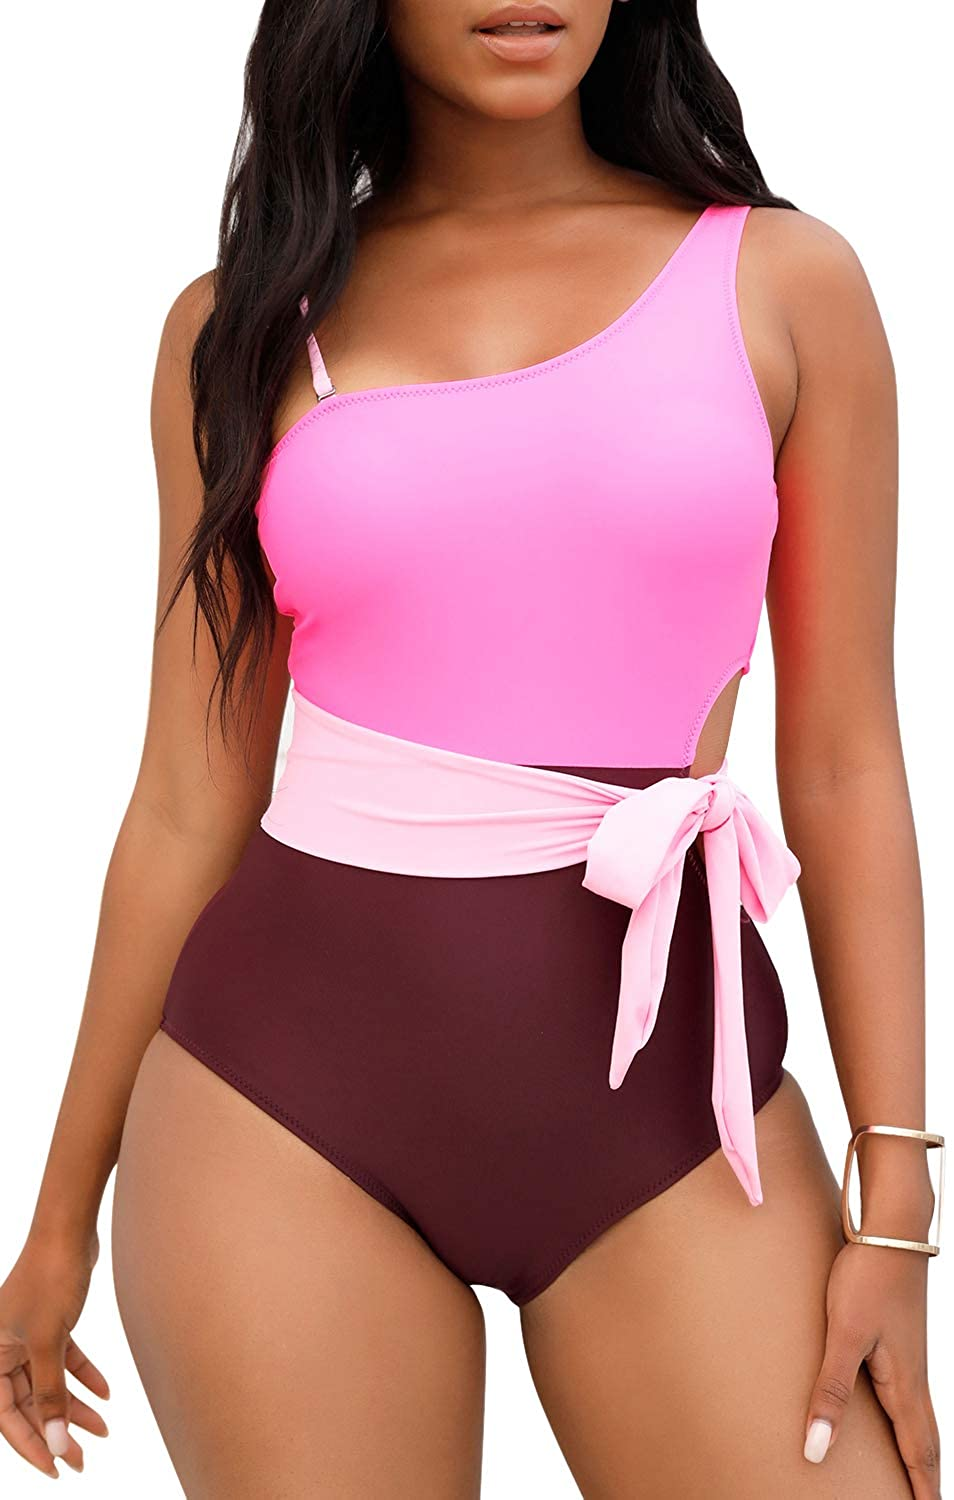 Womens One Piece Swimsuits Cutout Lace Up Padded Vintage Sexy High Cut One Shoulder Monokini Bathing Suits